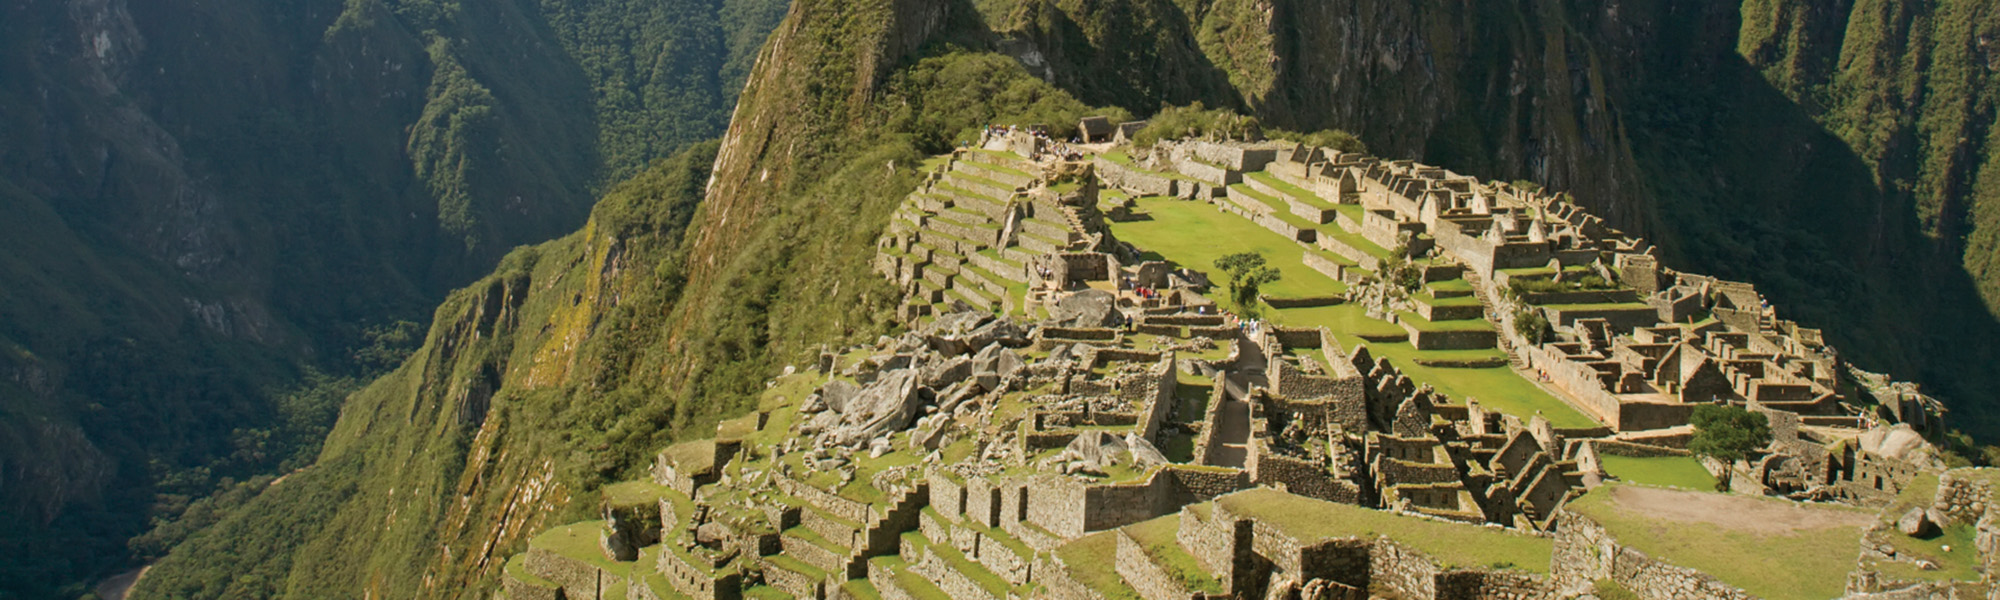 aerial view of the ruins of Machu Picchu in Peru